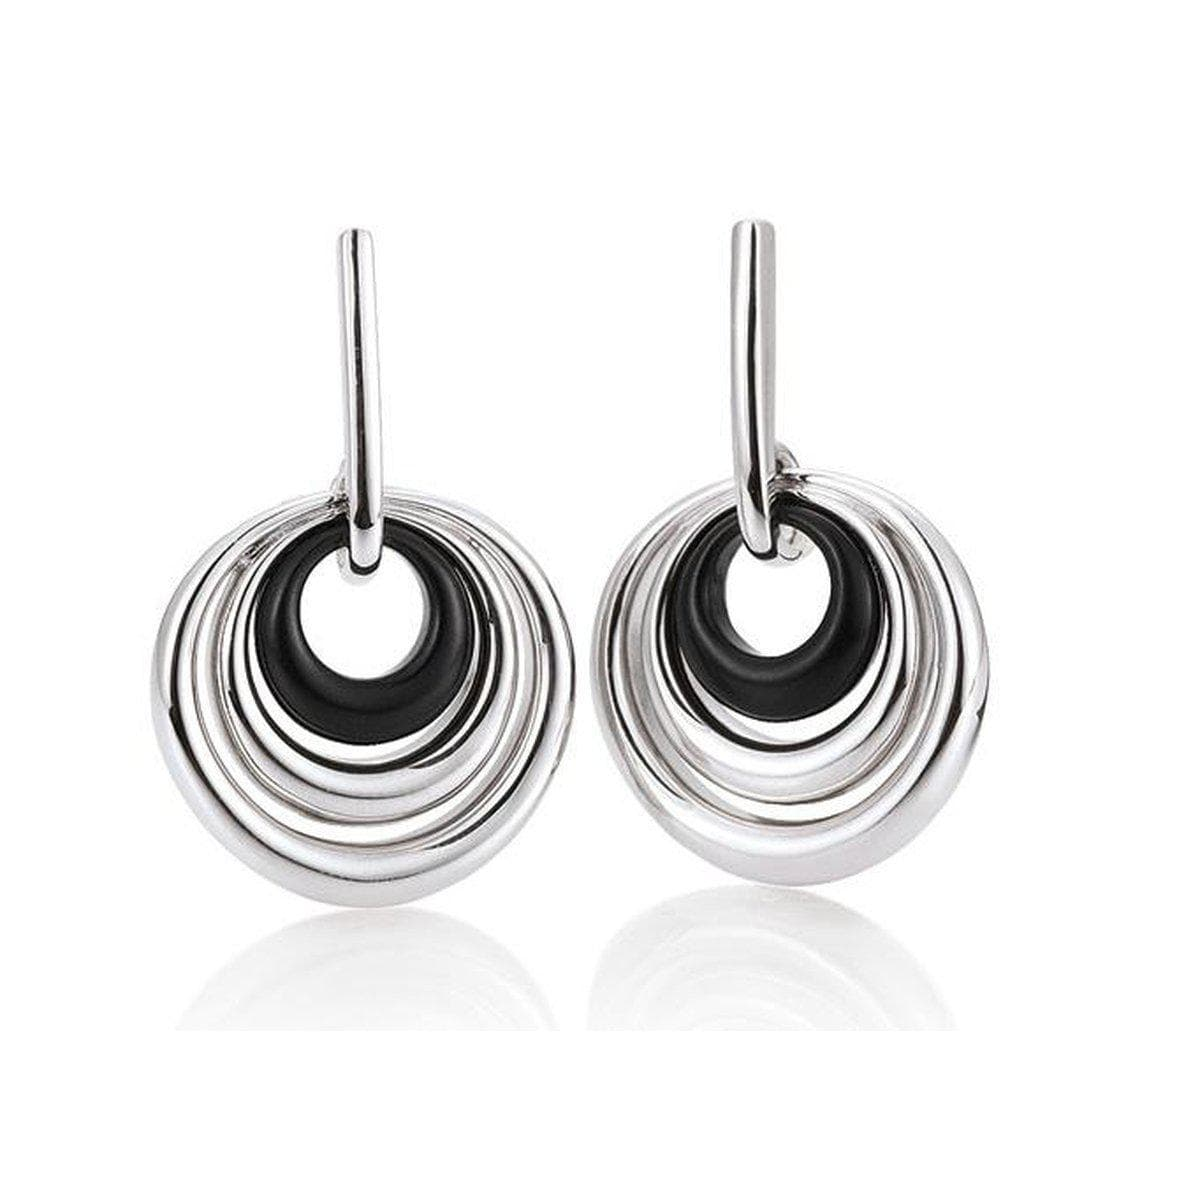 Sterling Silver Earrings - 12/02010-Breuning-Renee Taylor Gallery